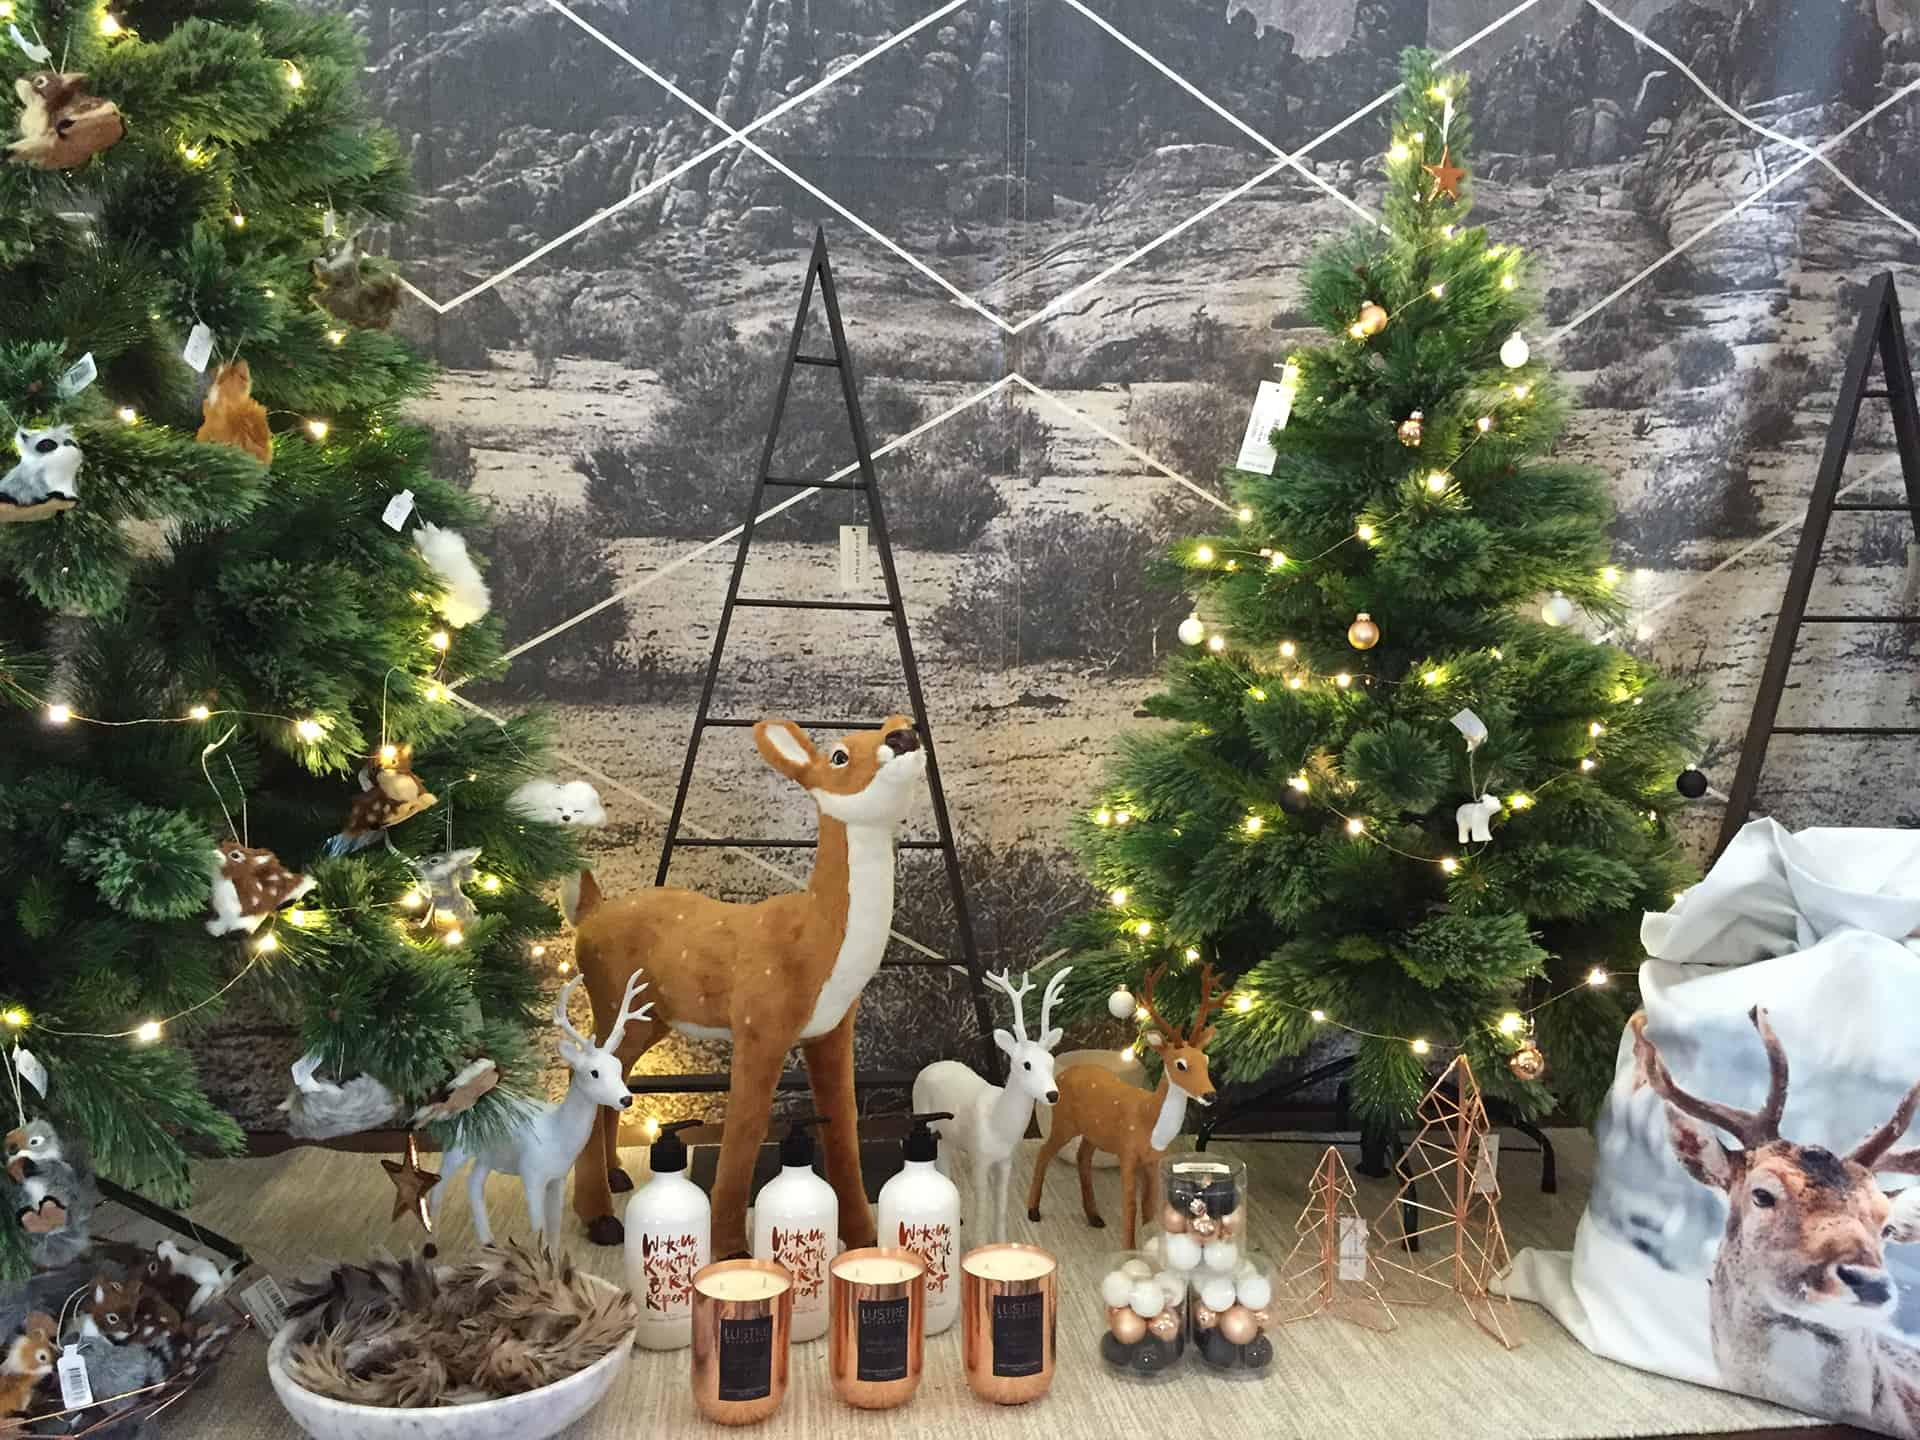 Celebrate christmas in style | The Garden of Eden Nursery